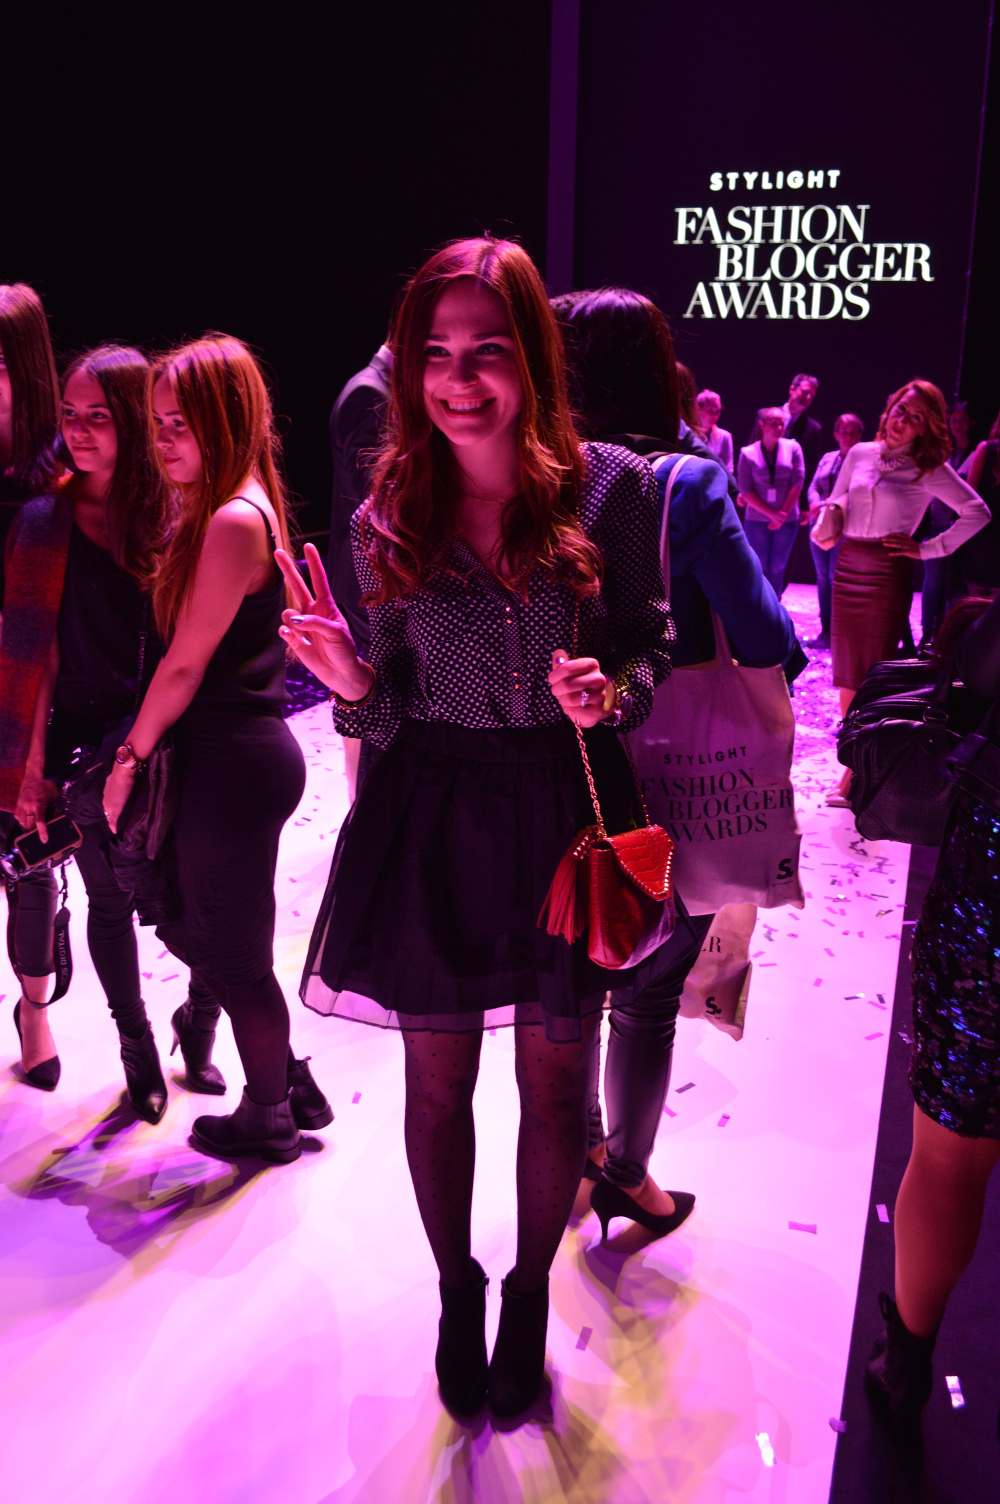 StylightFashionBloggerAwards2